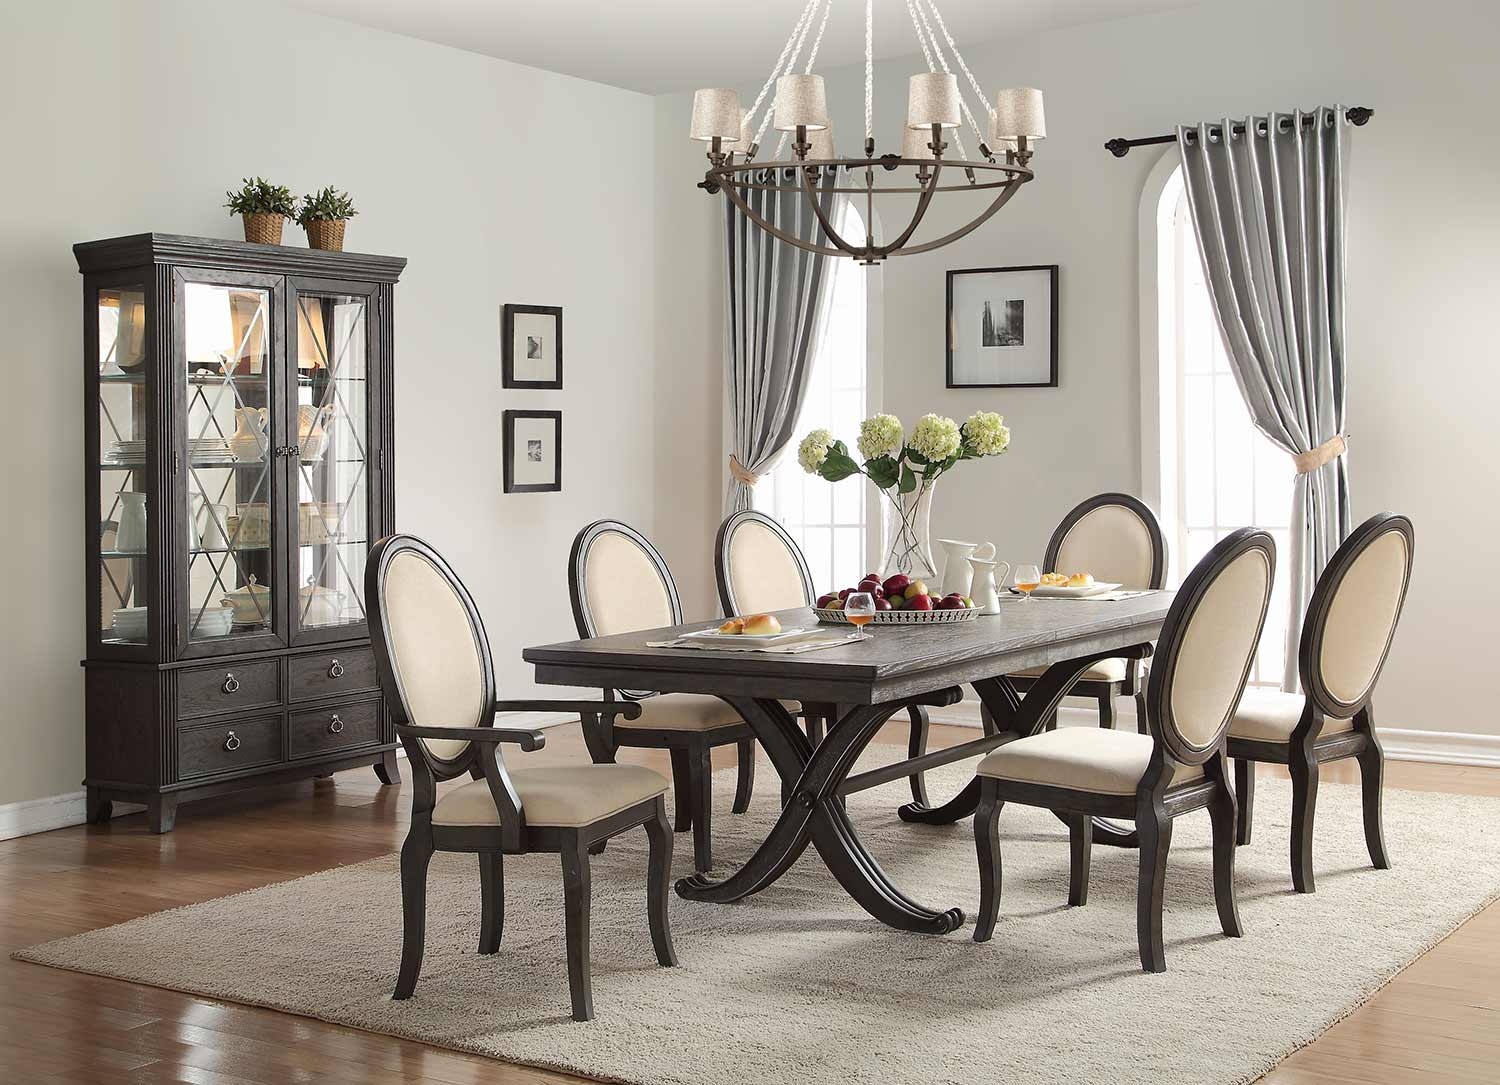 Homelegance Lindley Dining Set - Walnut/Dusty Gray